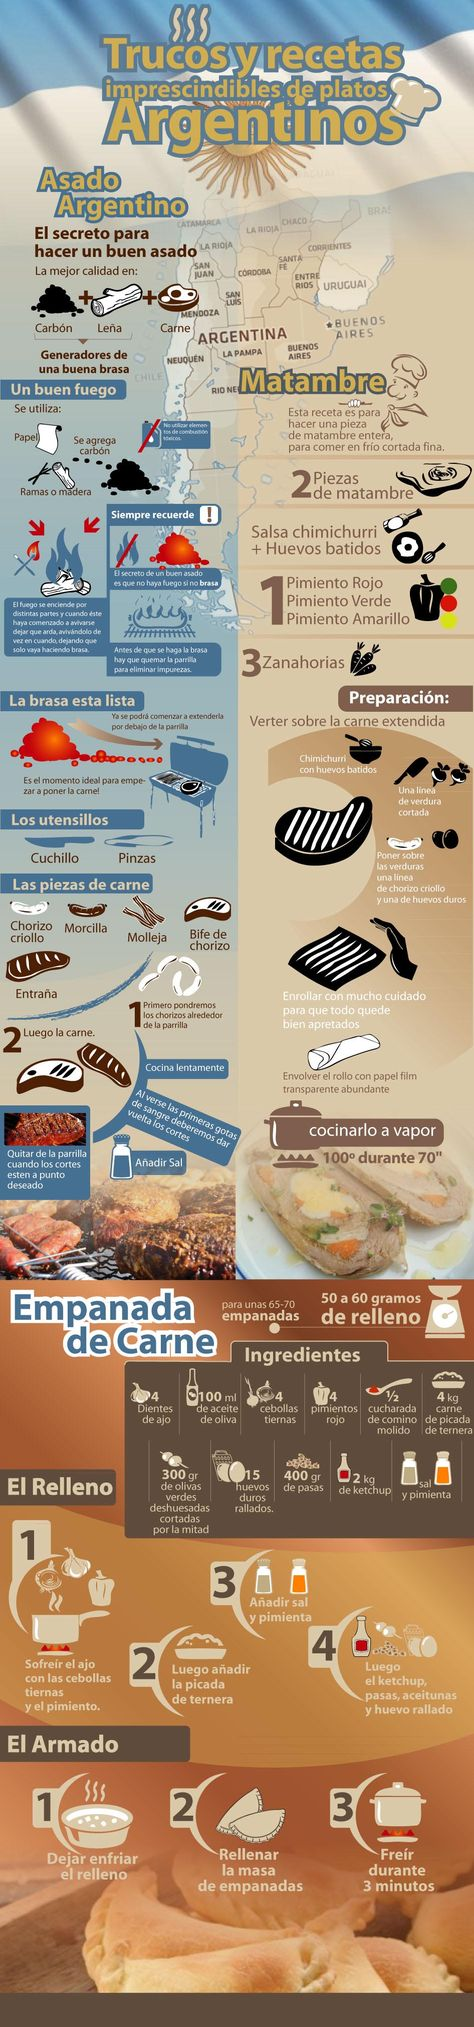 114 best churrasco dicas e lugares images on pinterest food places and tips